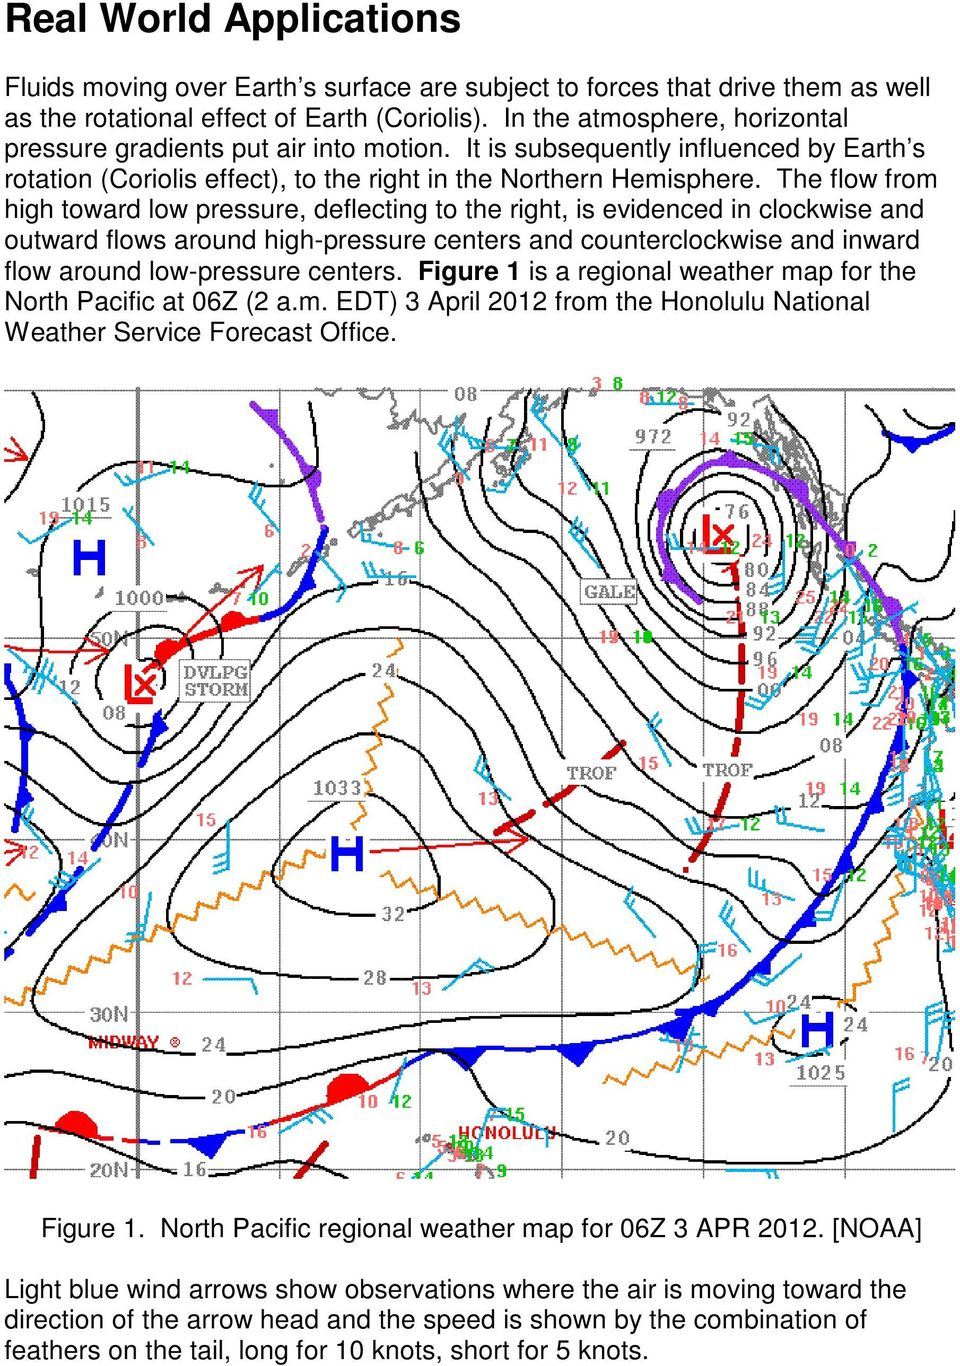 The flow from high toward low pressure, deflecting to the right, is evidenced in clockwise and outward flows around high-pressure centers and counterclockwise and inward flow around low-pressure